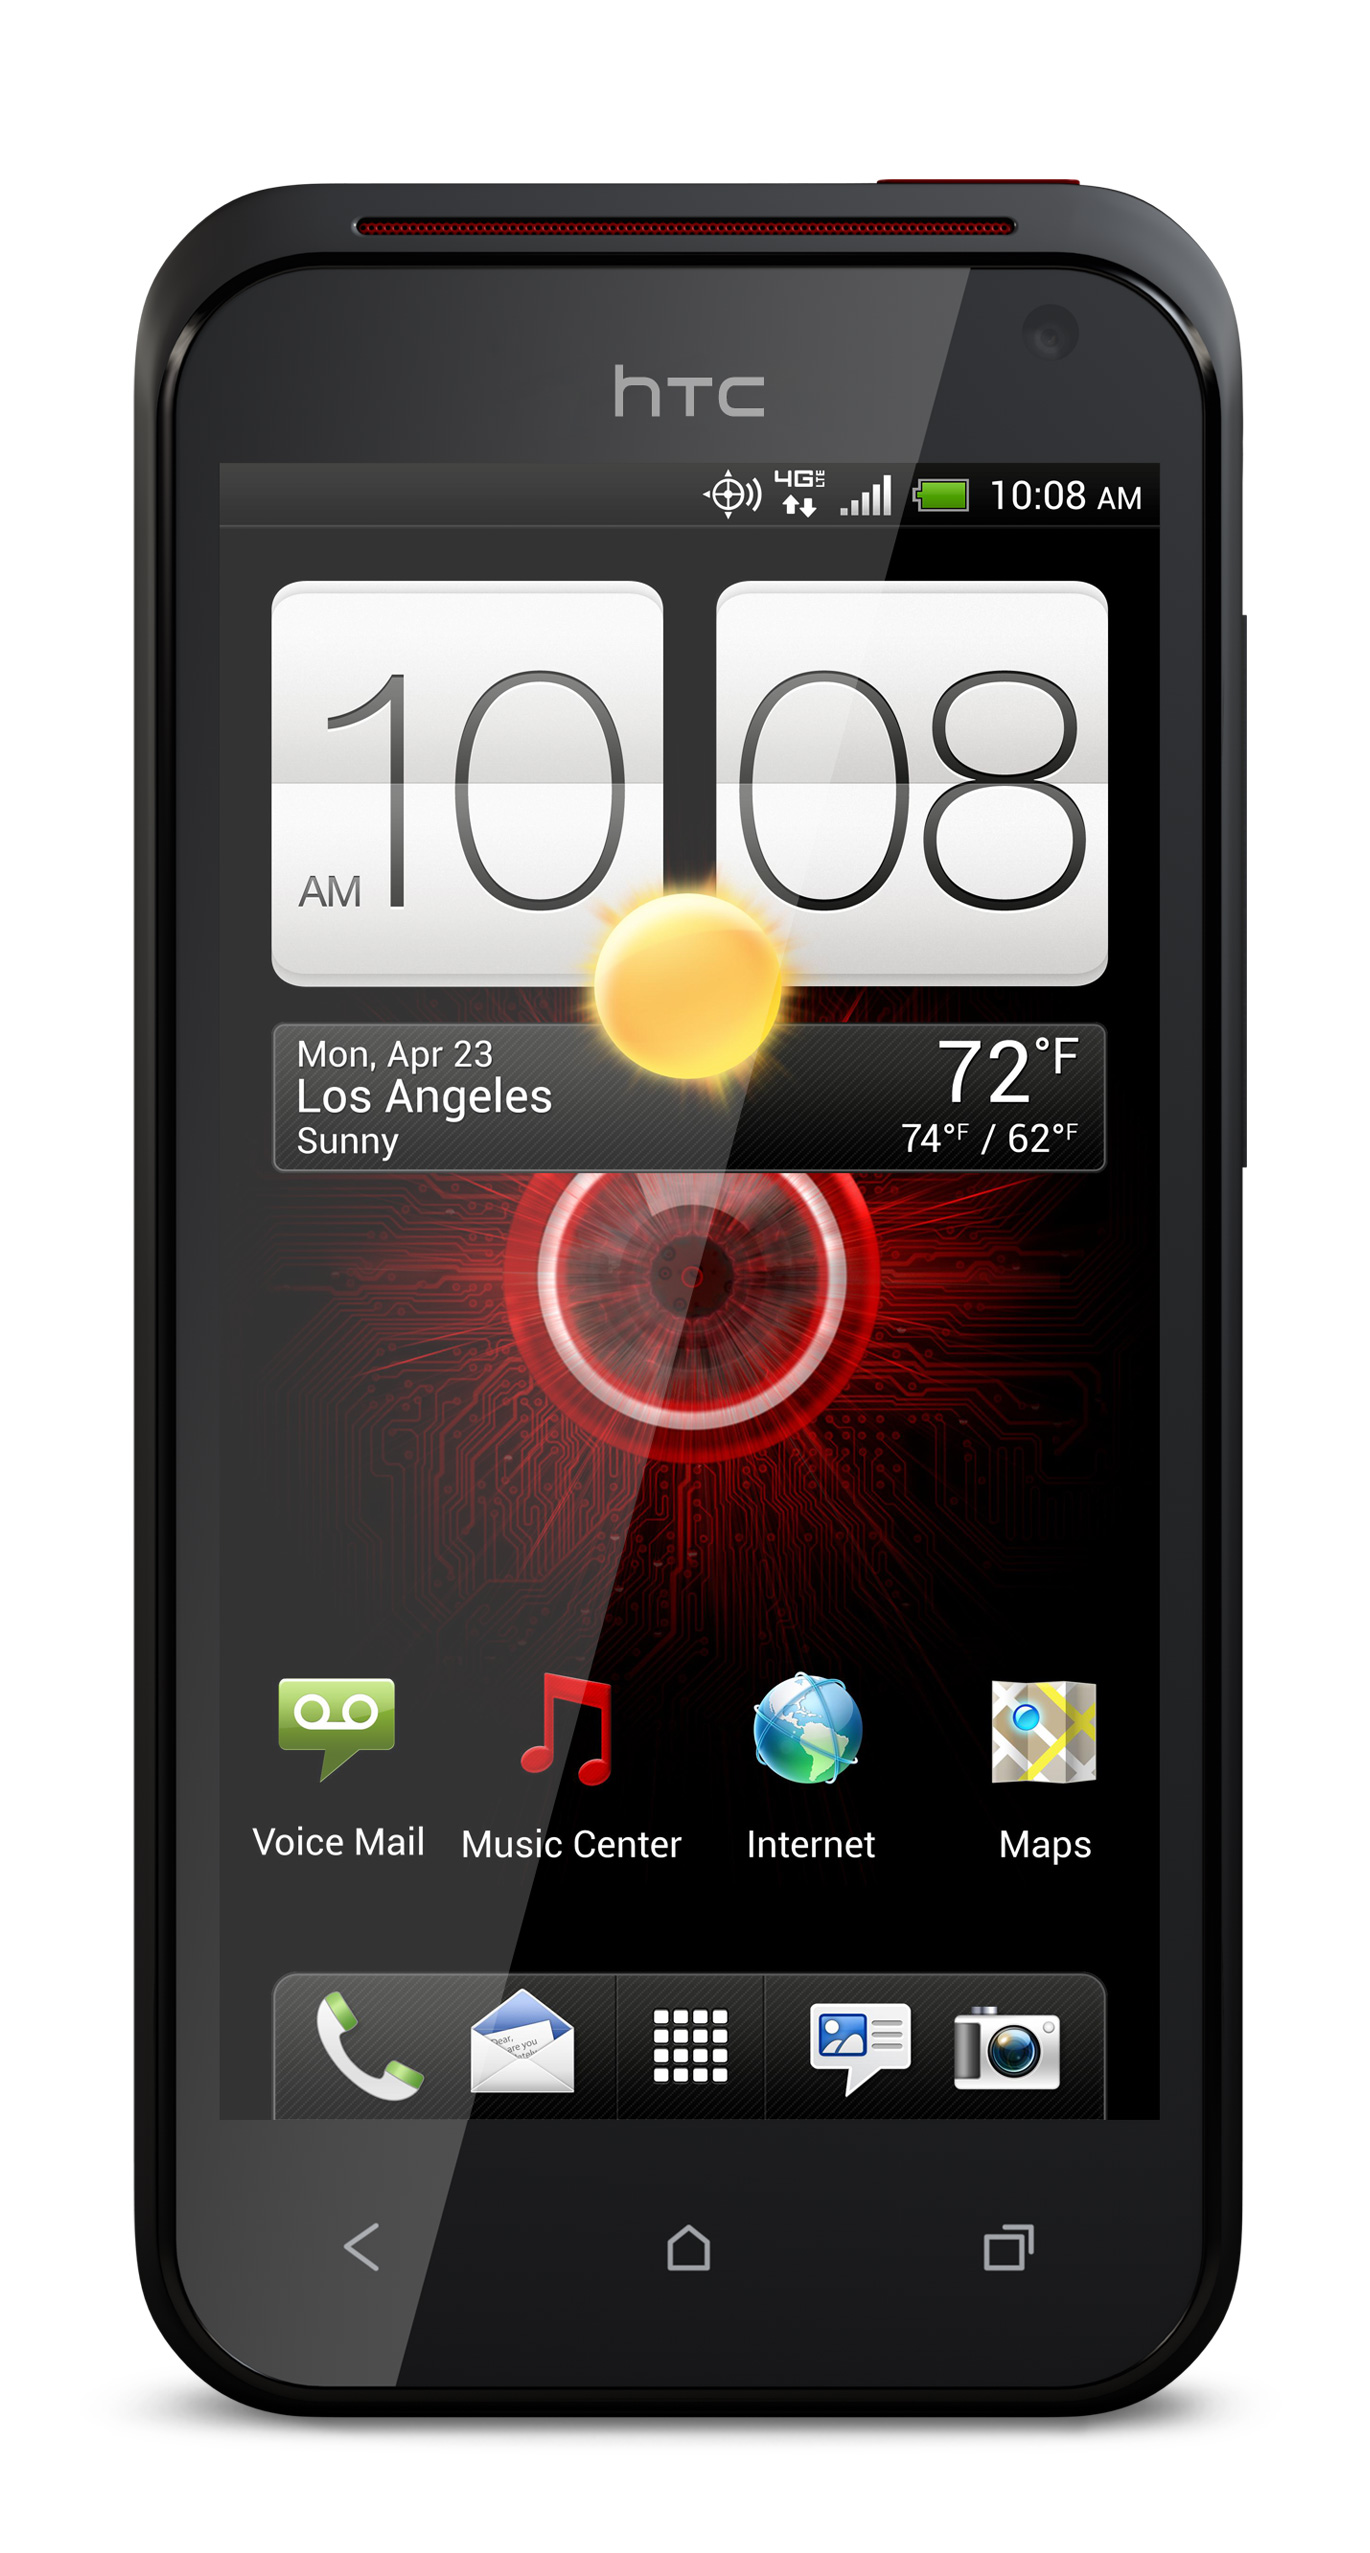 htc droid incredible 4g lte android smartphone for verizon Verizon HTC EVO Verizon HTC Droid Incredible